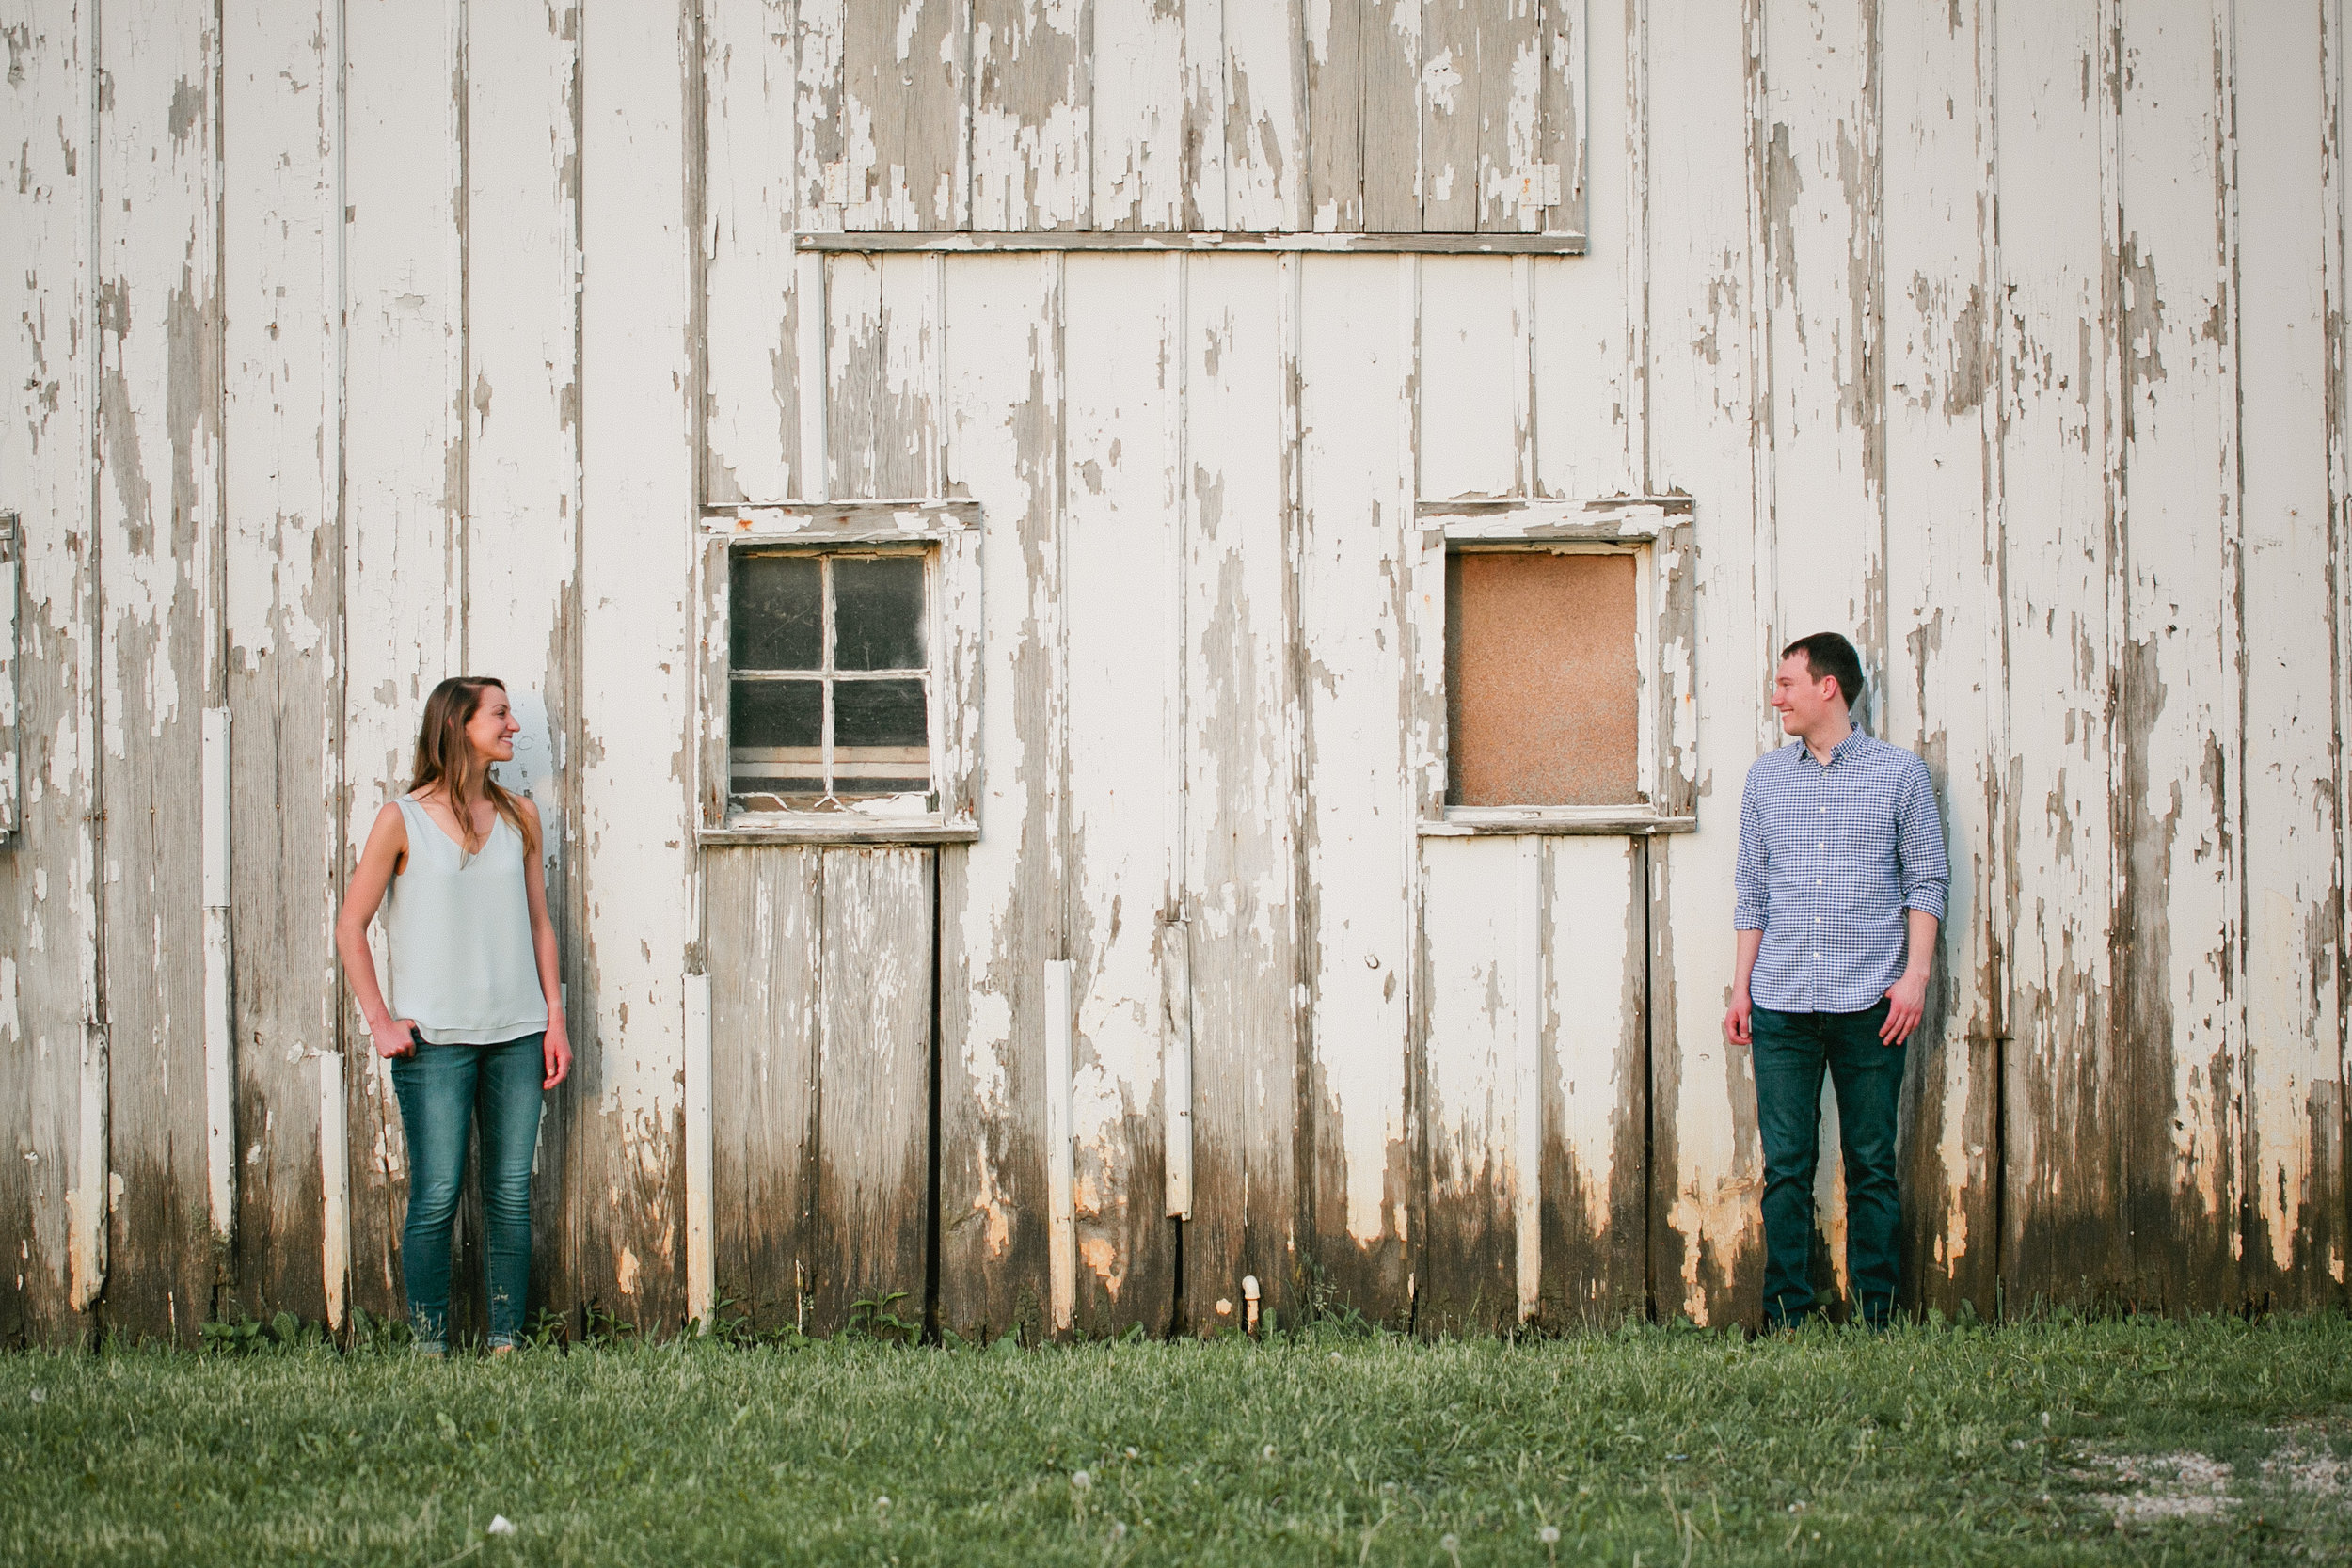 Water Works Des Moines morning engagement session